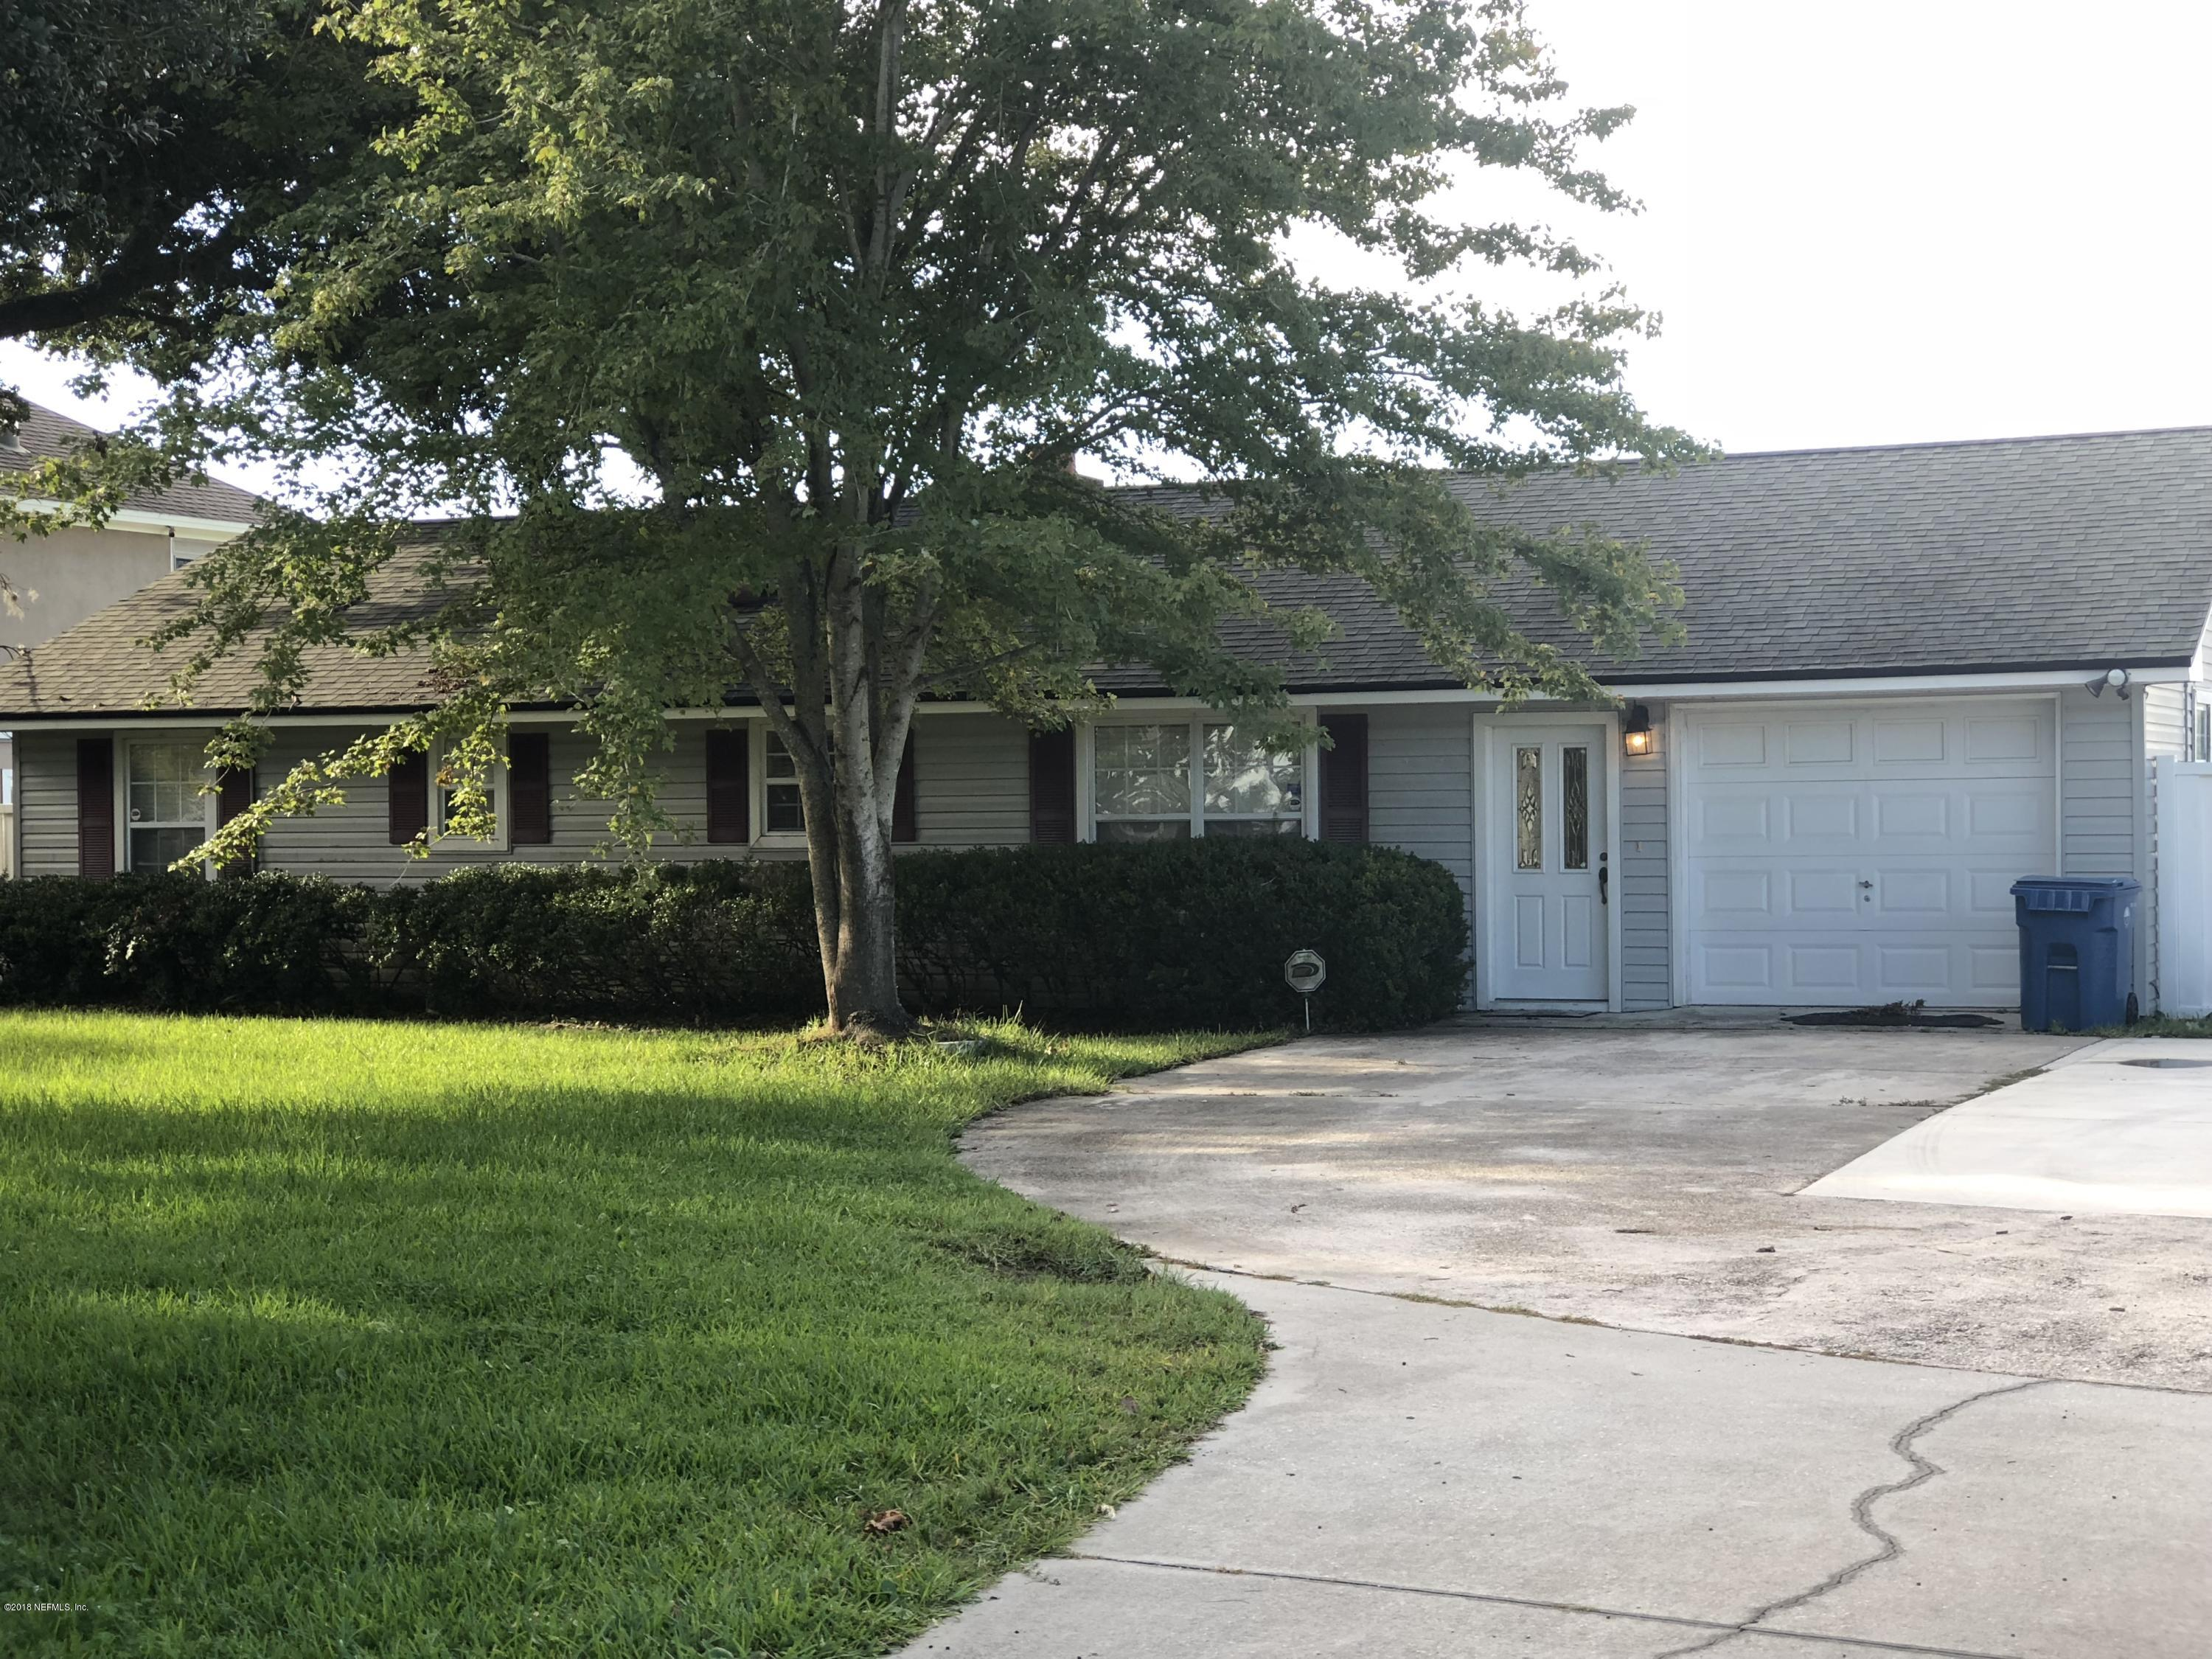 6116 HECKSCHER, JACKSONVILLE, FLORIDA 32226, 2 Bedrooms Bedrooms, ,1 BathroomBathrooms,Residential - single family,For sale,HECKSCHER,965552